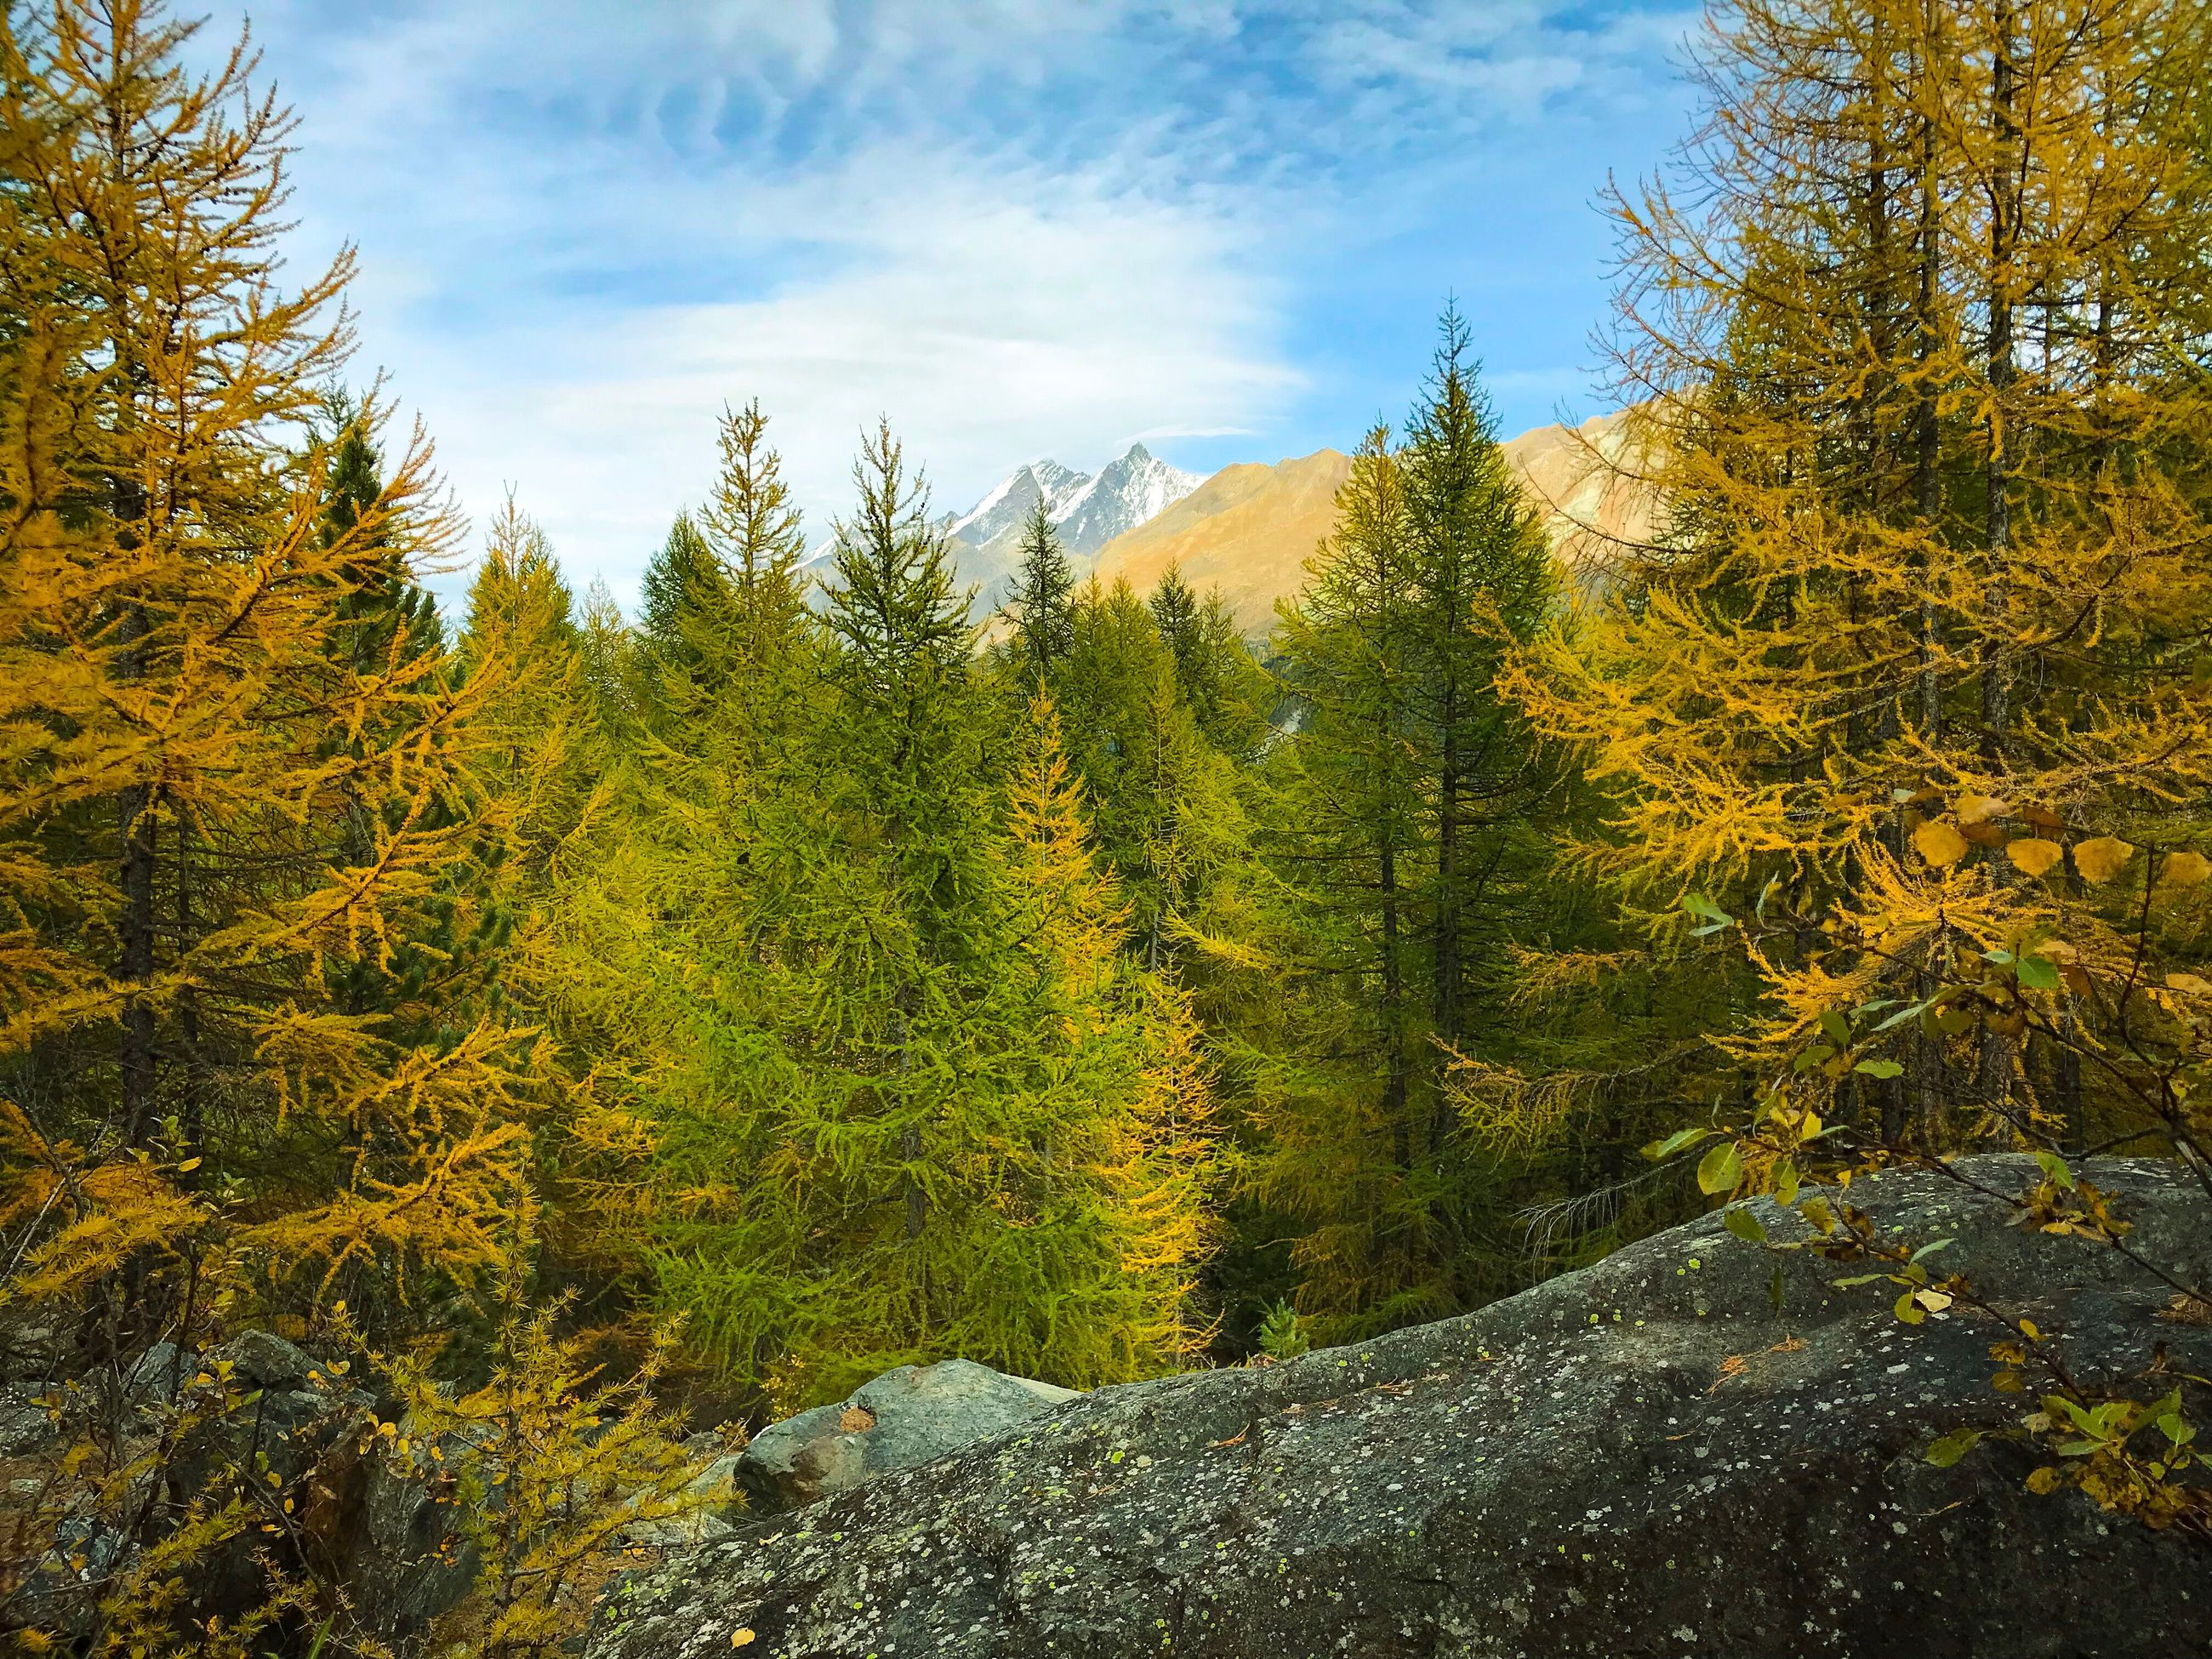 tree, nature, forest, sky, no people, tranquil scene, mountain, beauty in nature, day, pine tree, growth, tranquility, landscape, scenics, outdoors, autumn